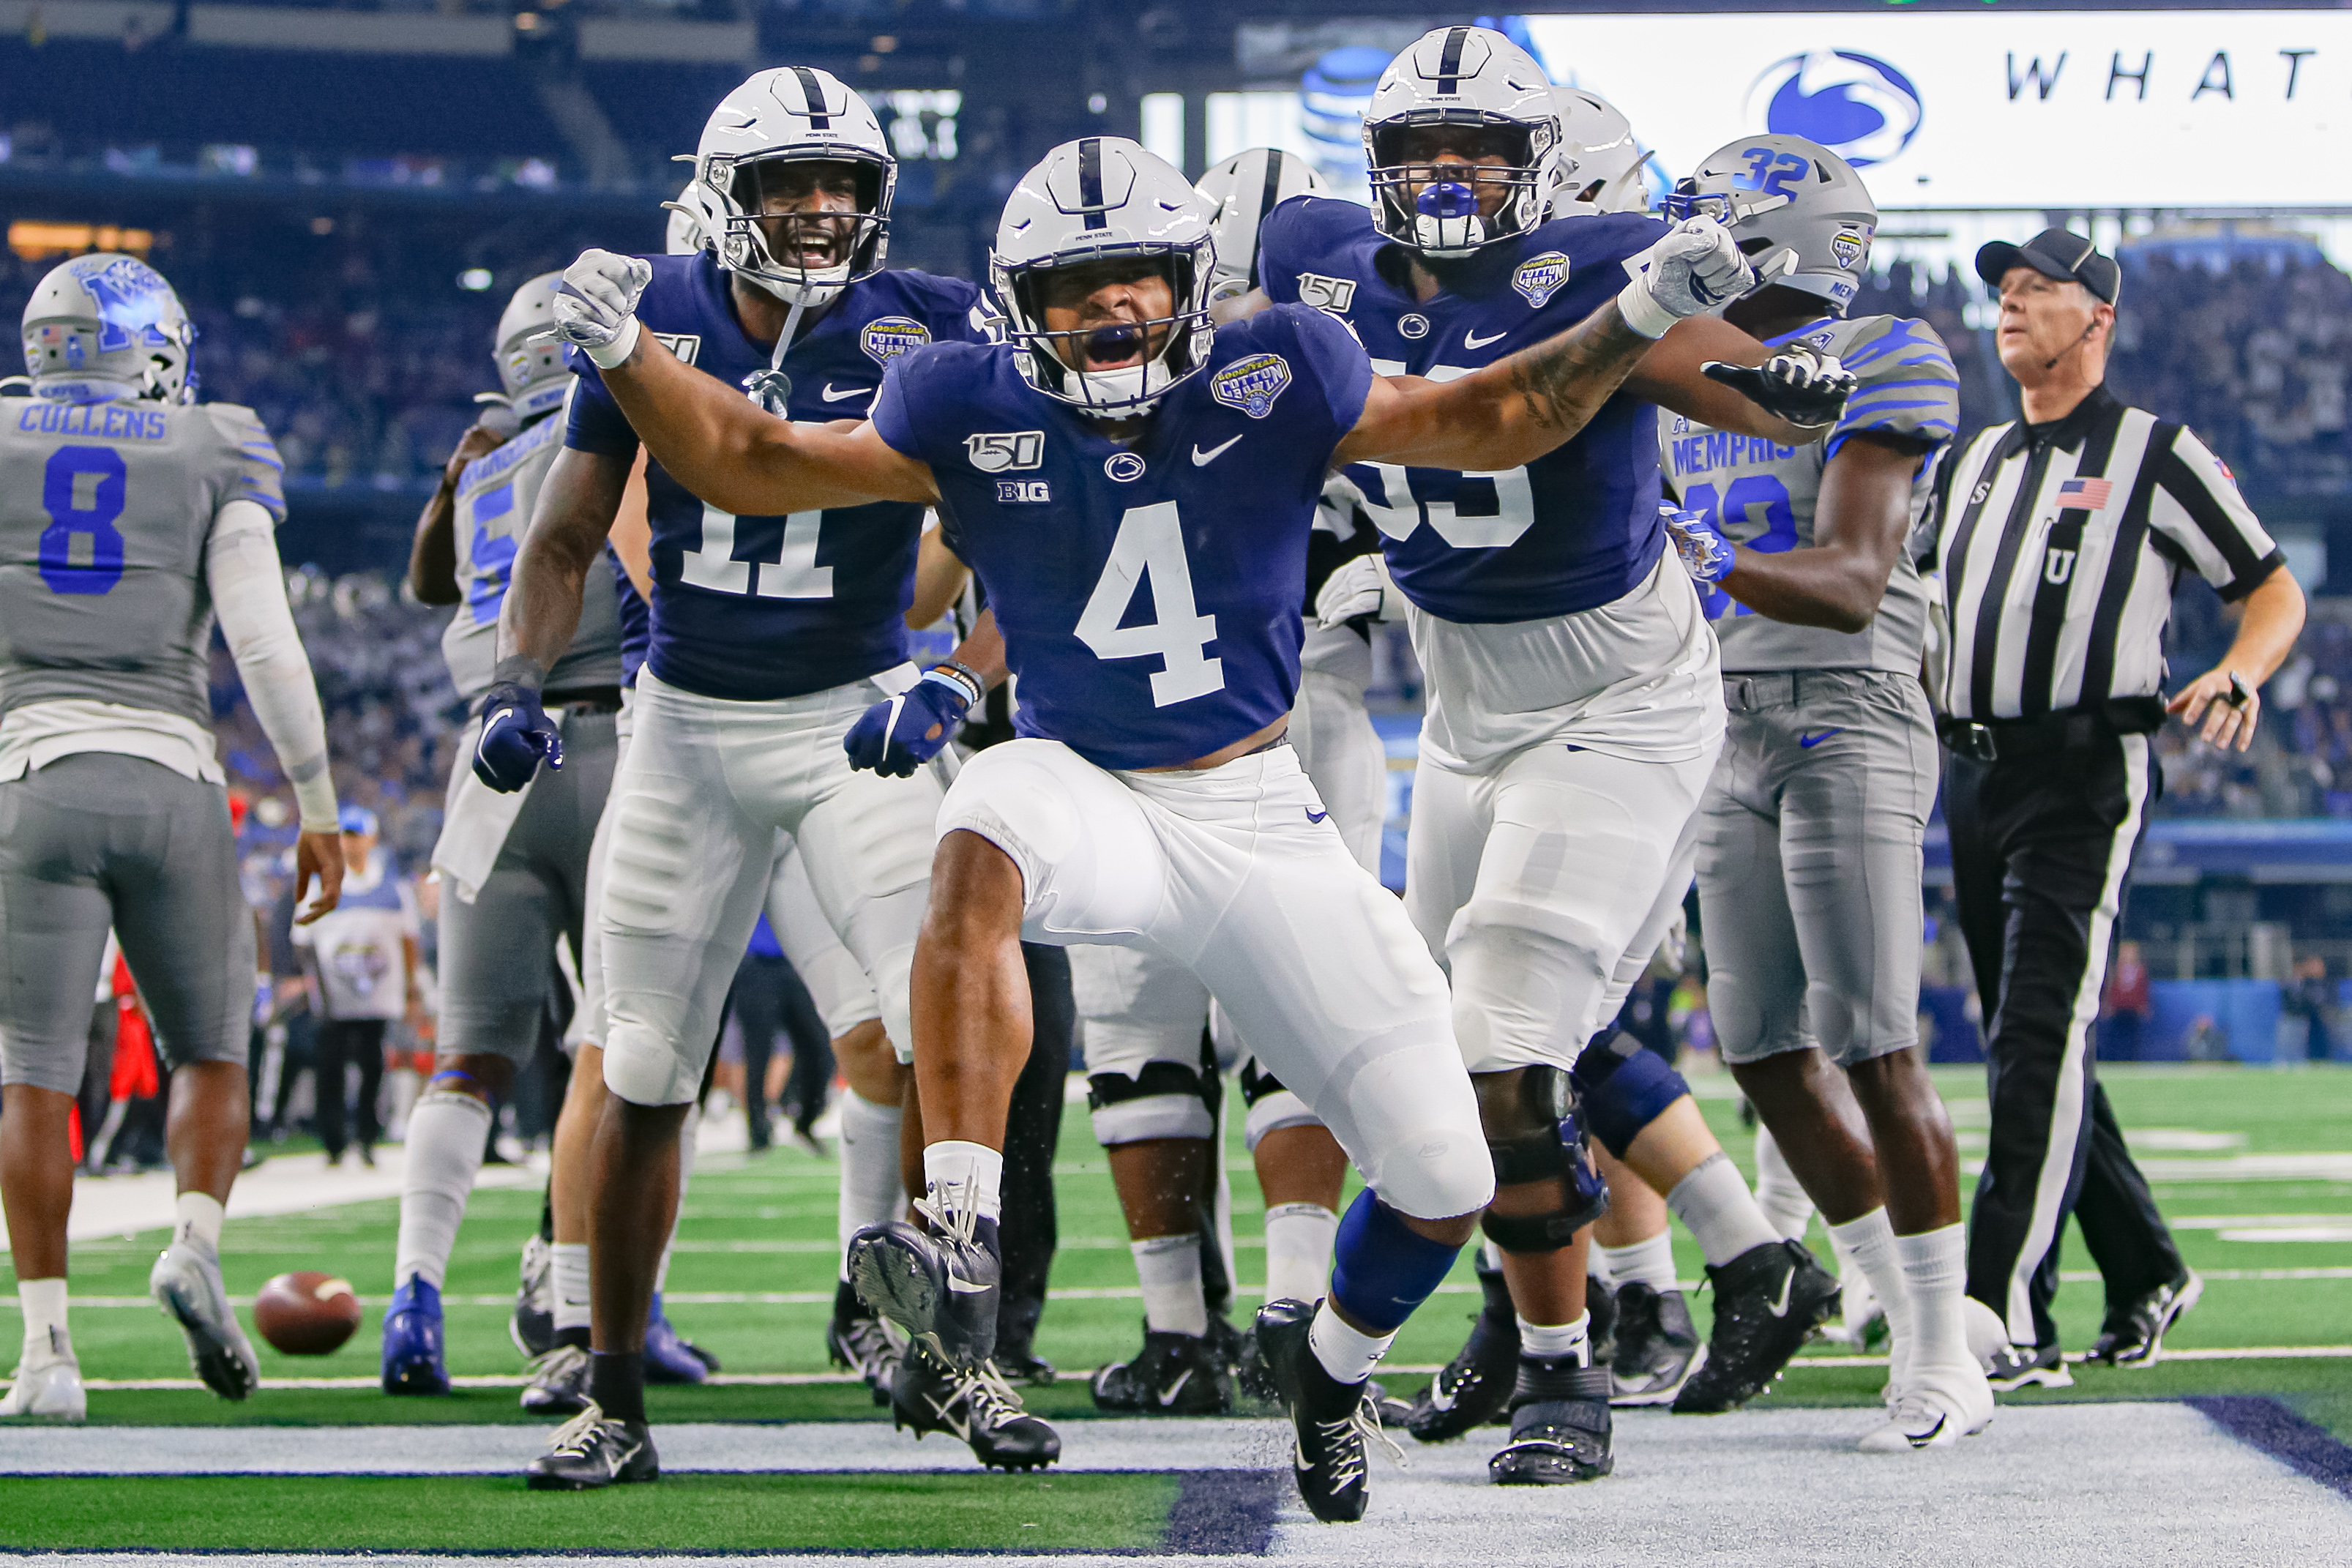 COLLEGE FOOTBALL: DEC 28 Cotton Bowl Classic - Memphis v Penn State